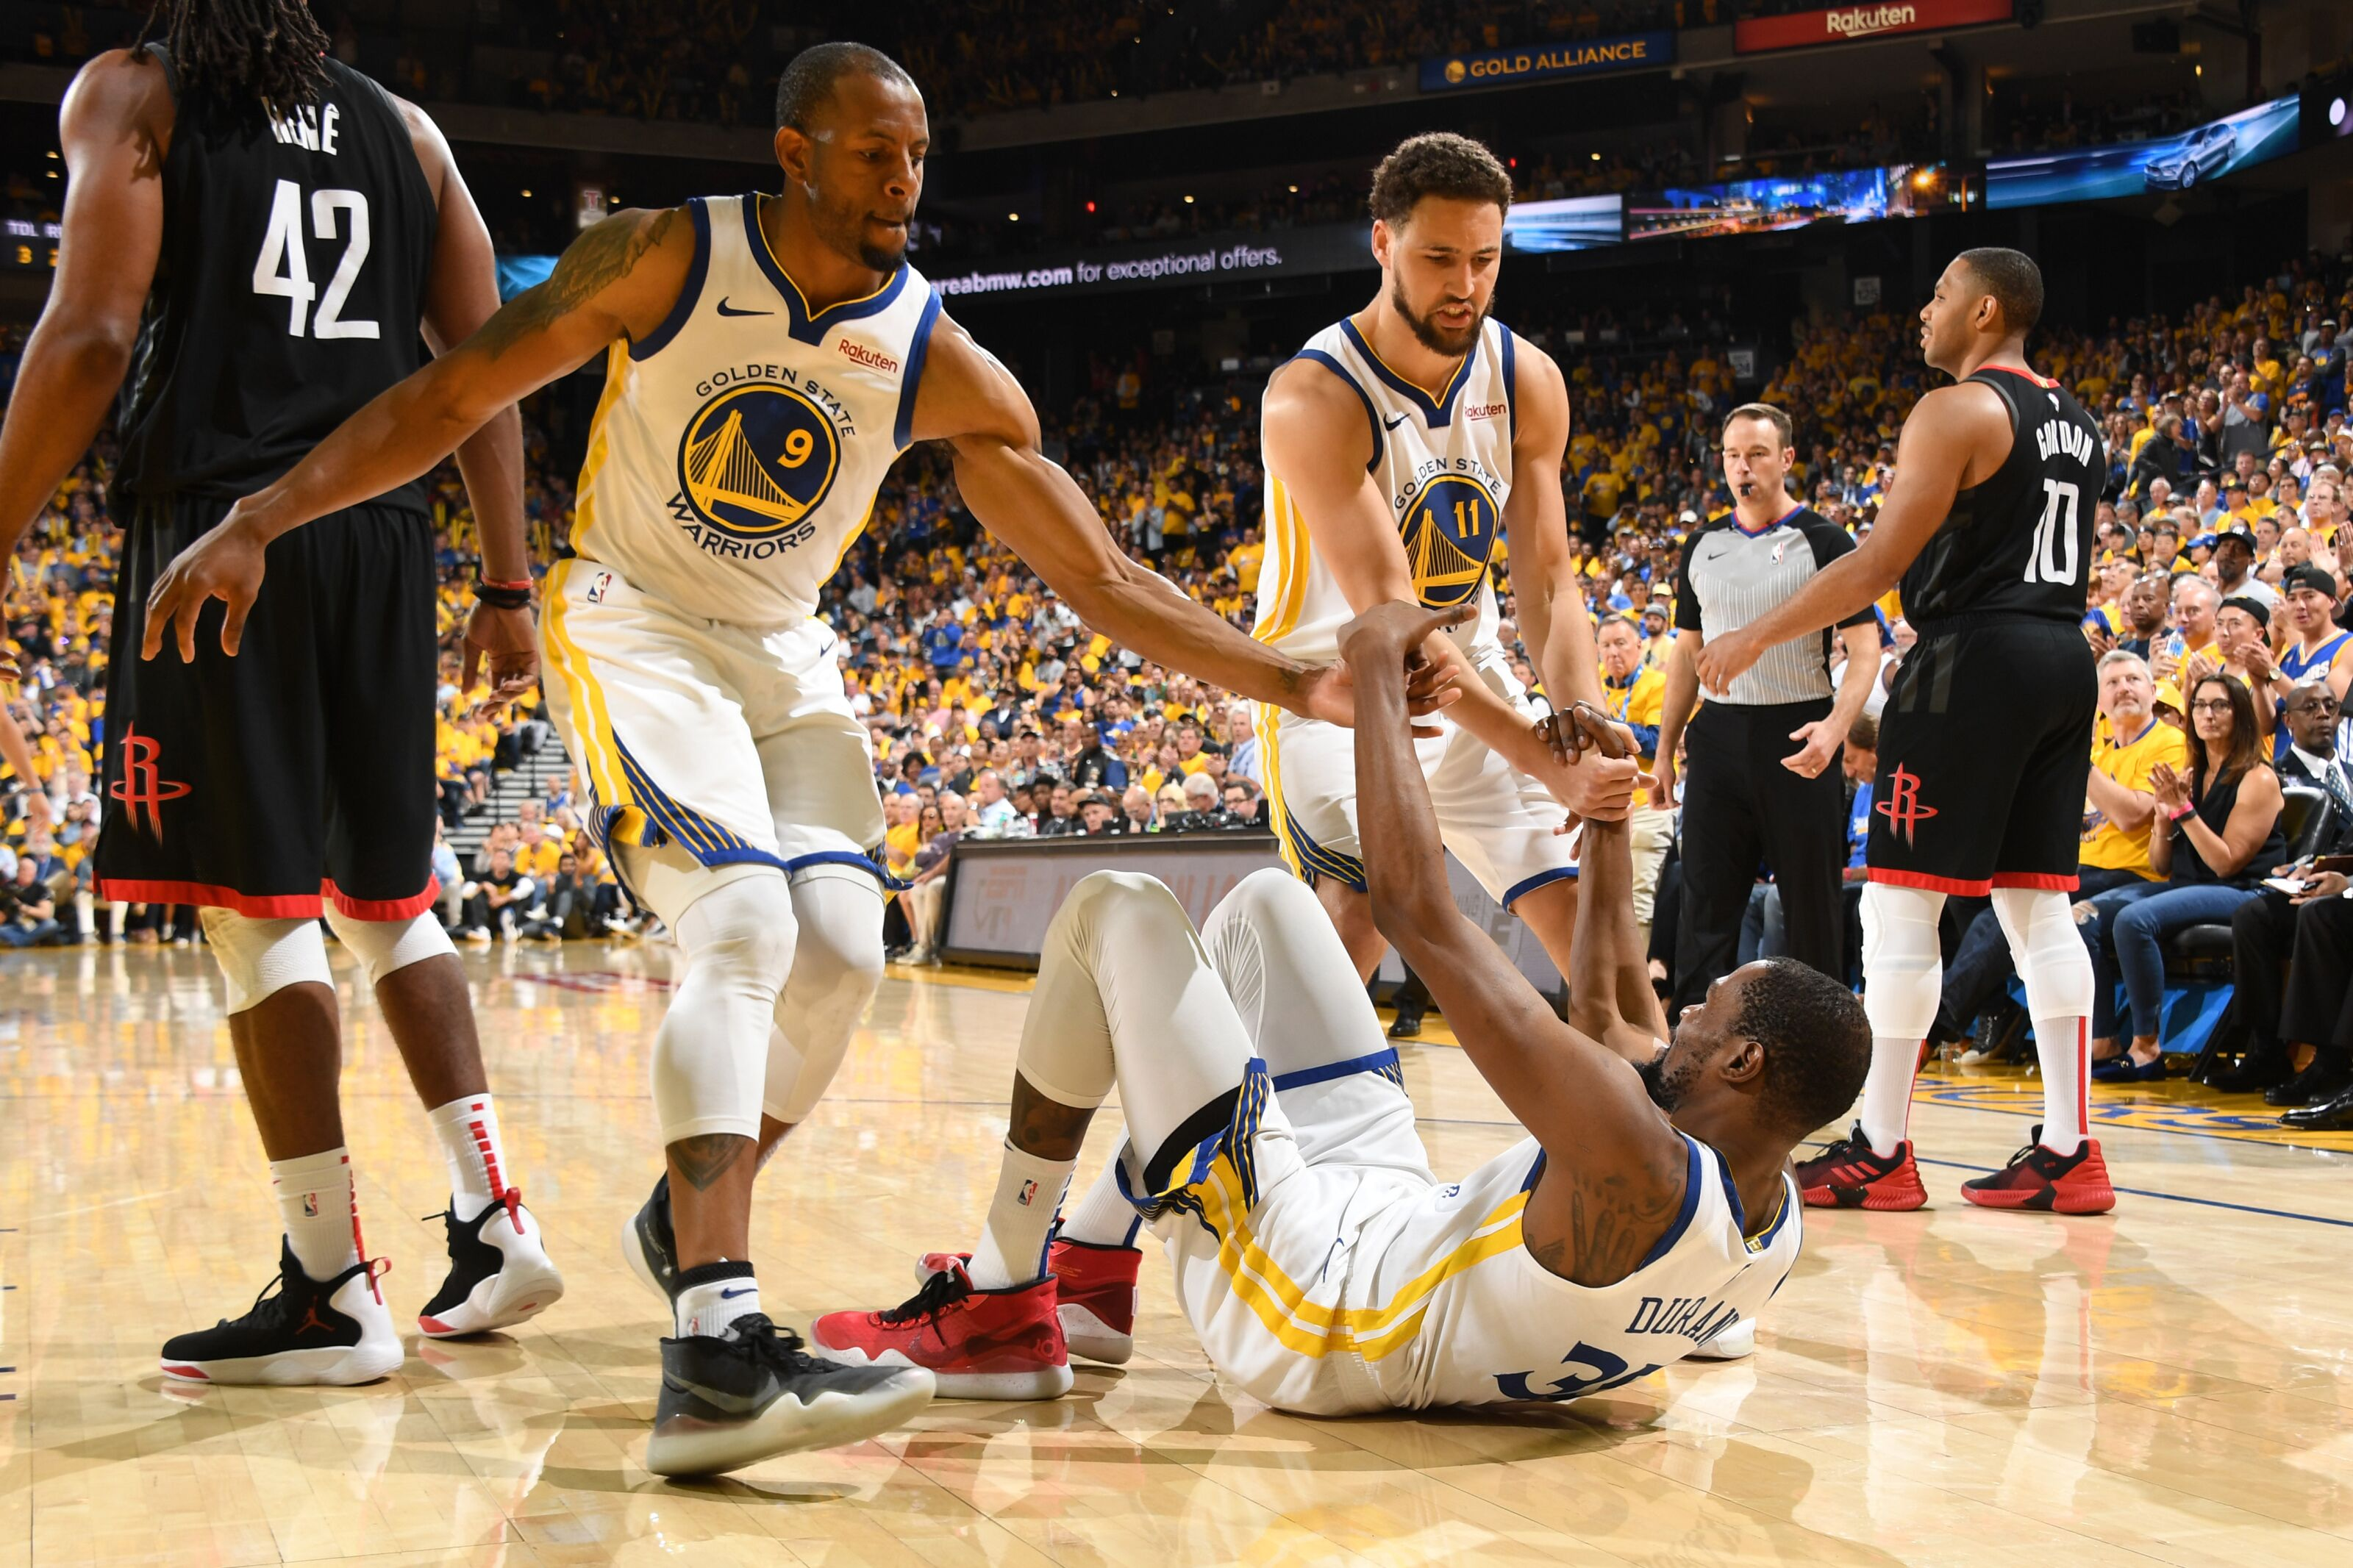 Golden State Warriors: Ironically, Kevin Durant got mad when double-teamed in practice